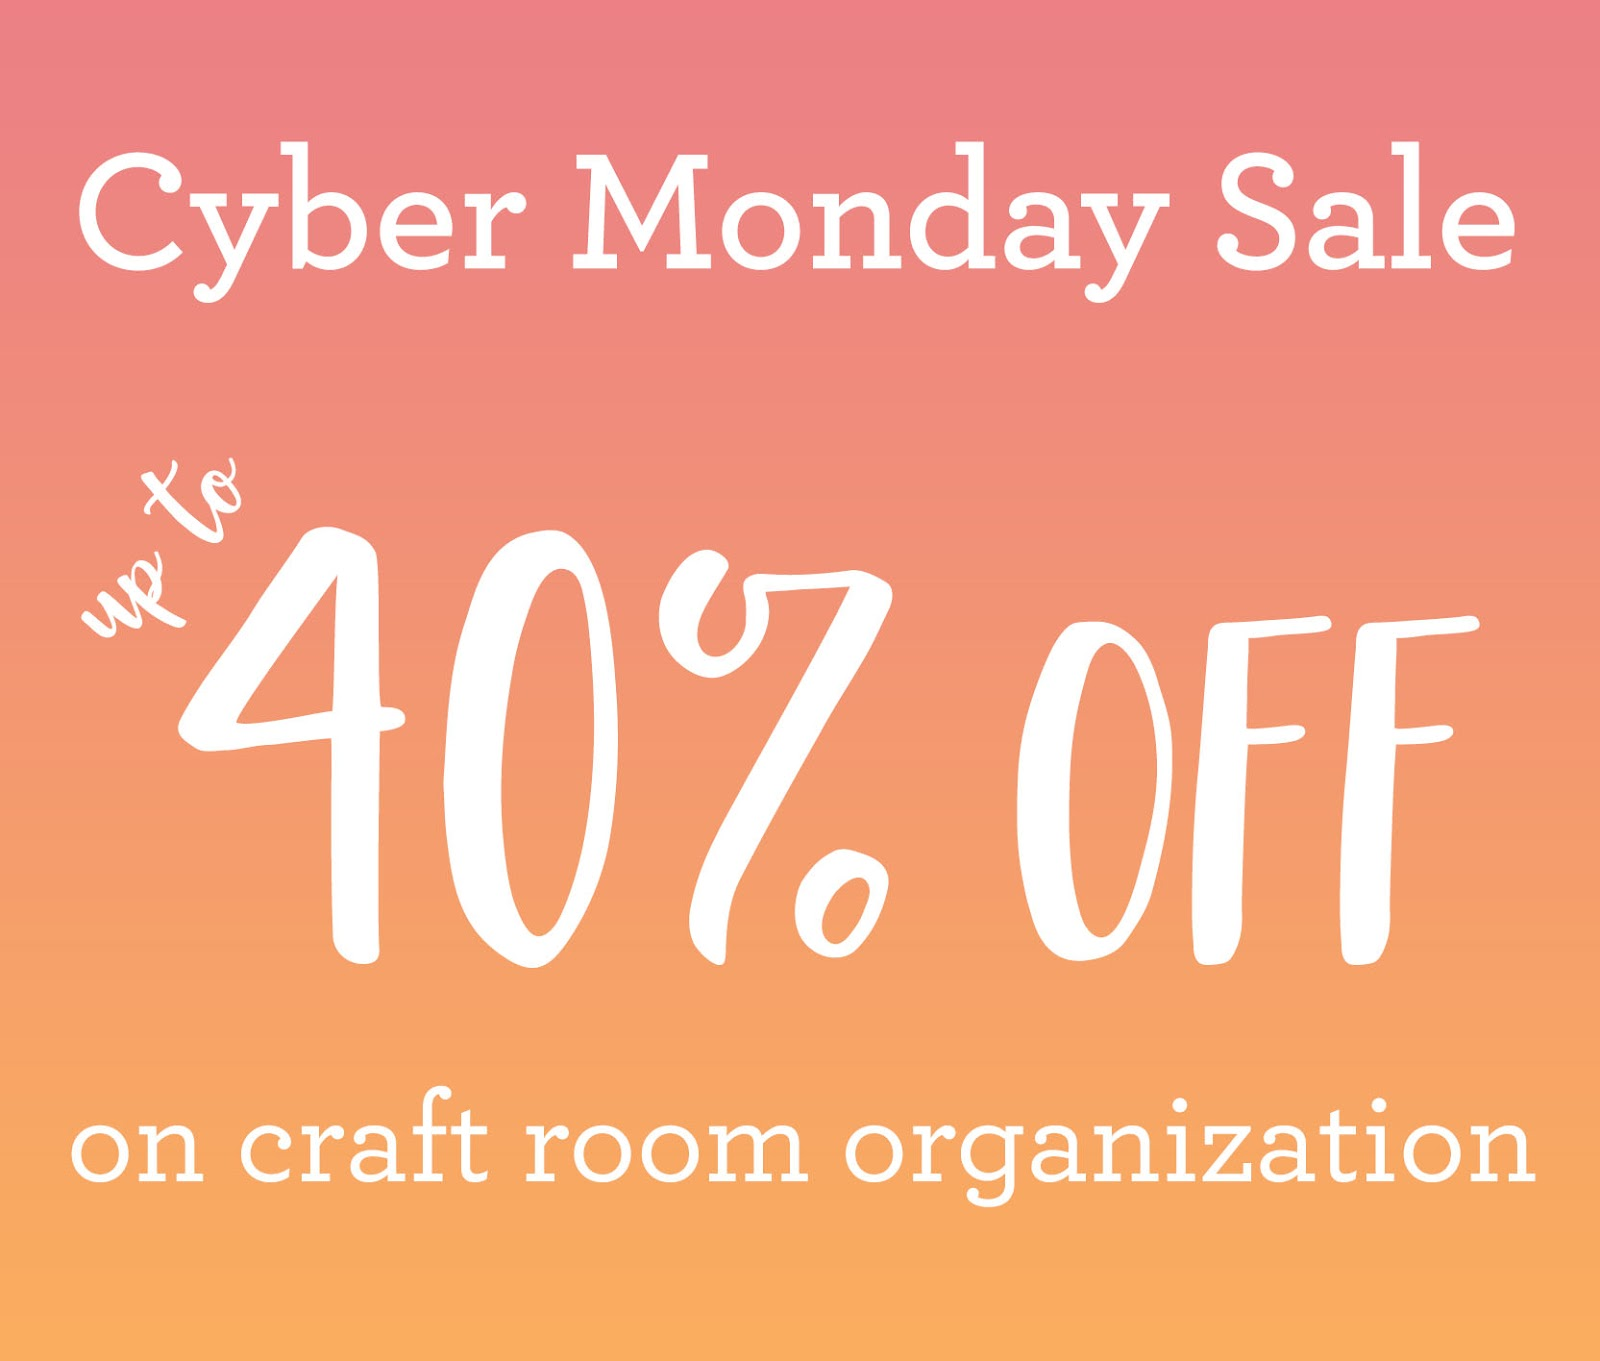 f85bbdd55 We are holding a one-day flash sale to celebrate Cyber Monday! The sale  will give you a chance to purchase our Workspace Wonder items at 30% off  for ...